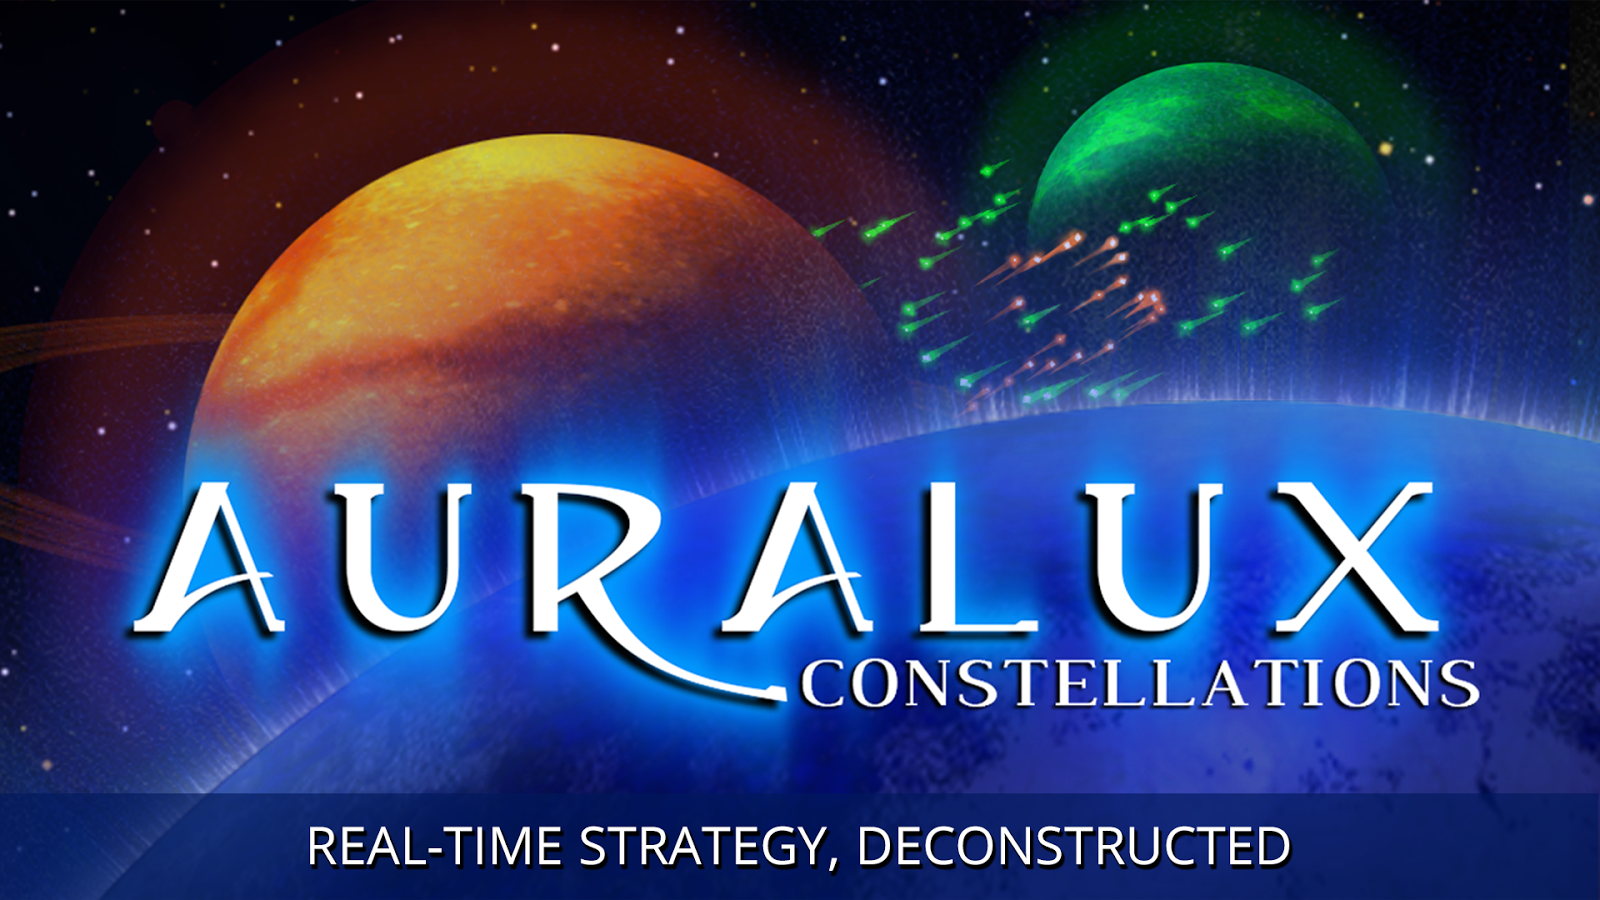 Auralux: Constellations Screenshot 5